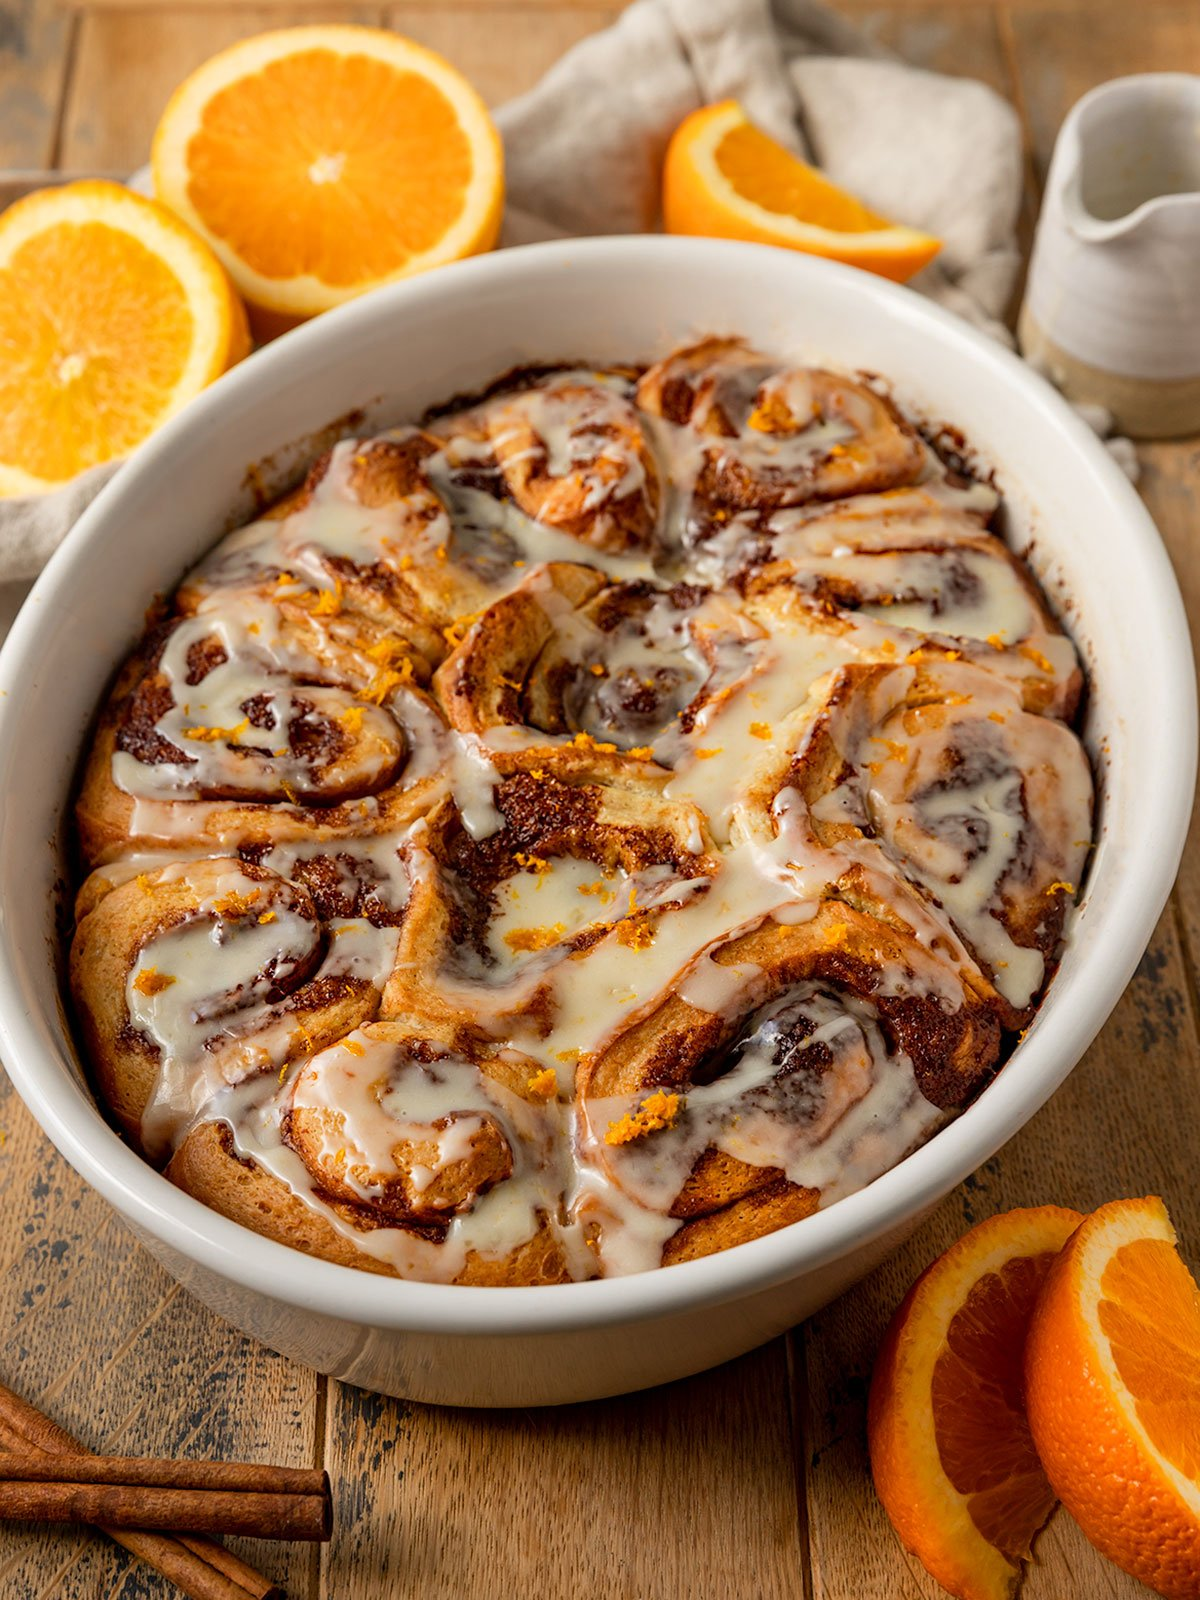 oval baking tray filled with orange cinnamon rolls